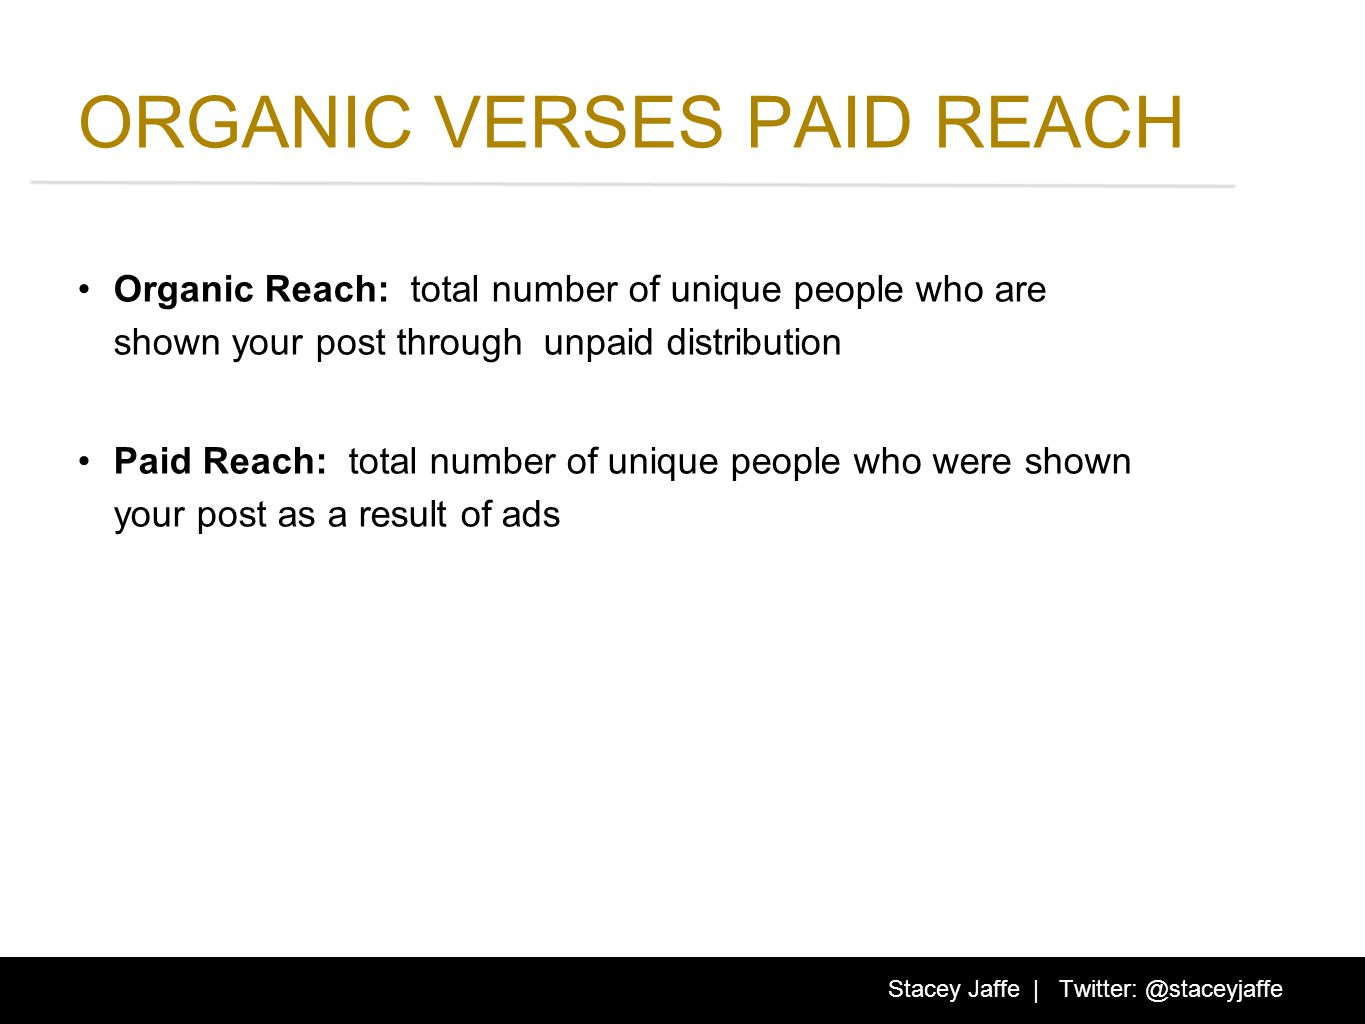 ORGANIC VERSES PAID REACH Organic Reach: total number of unique people who are shown your post through unpaid distribution Paid Reach: total number of unique people who were shown your post as a result of ads Stacey Jaffe | Twitter: @staceyjaffe